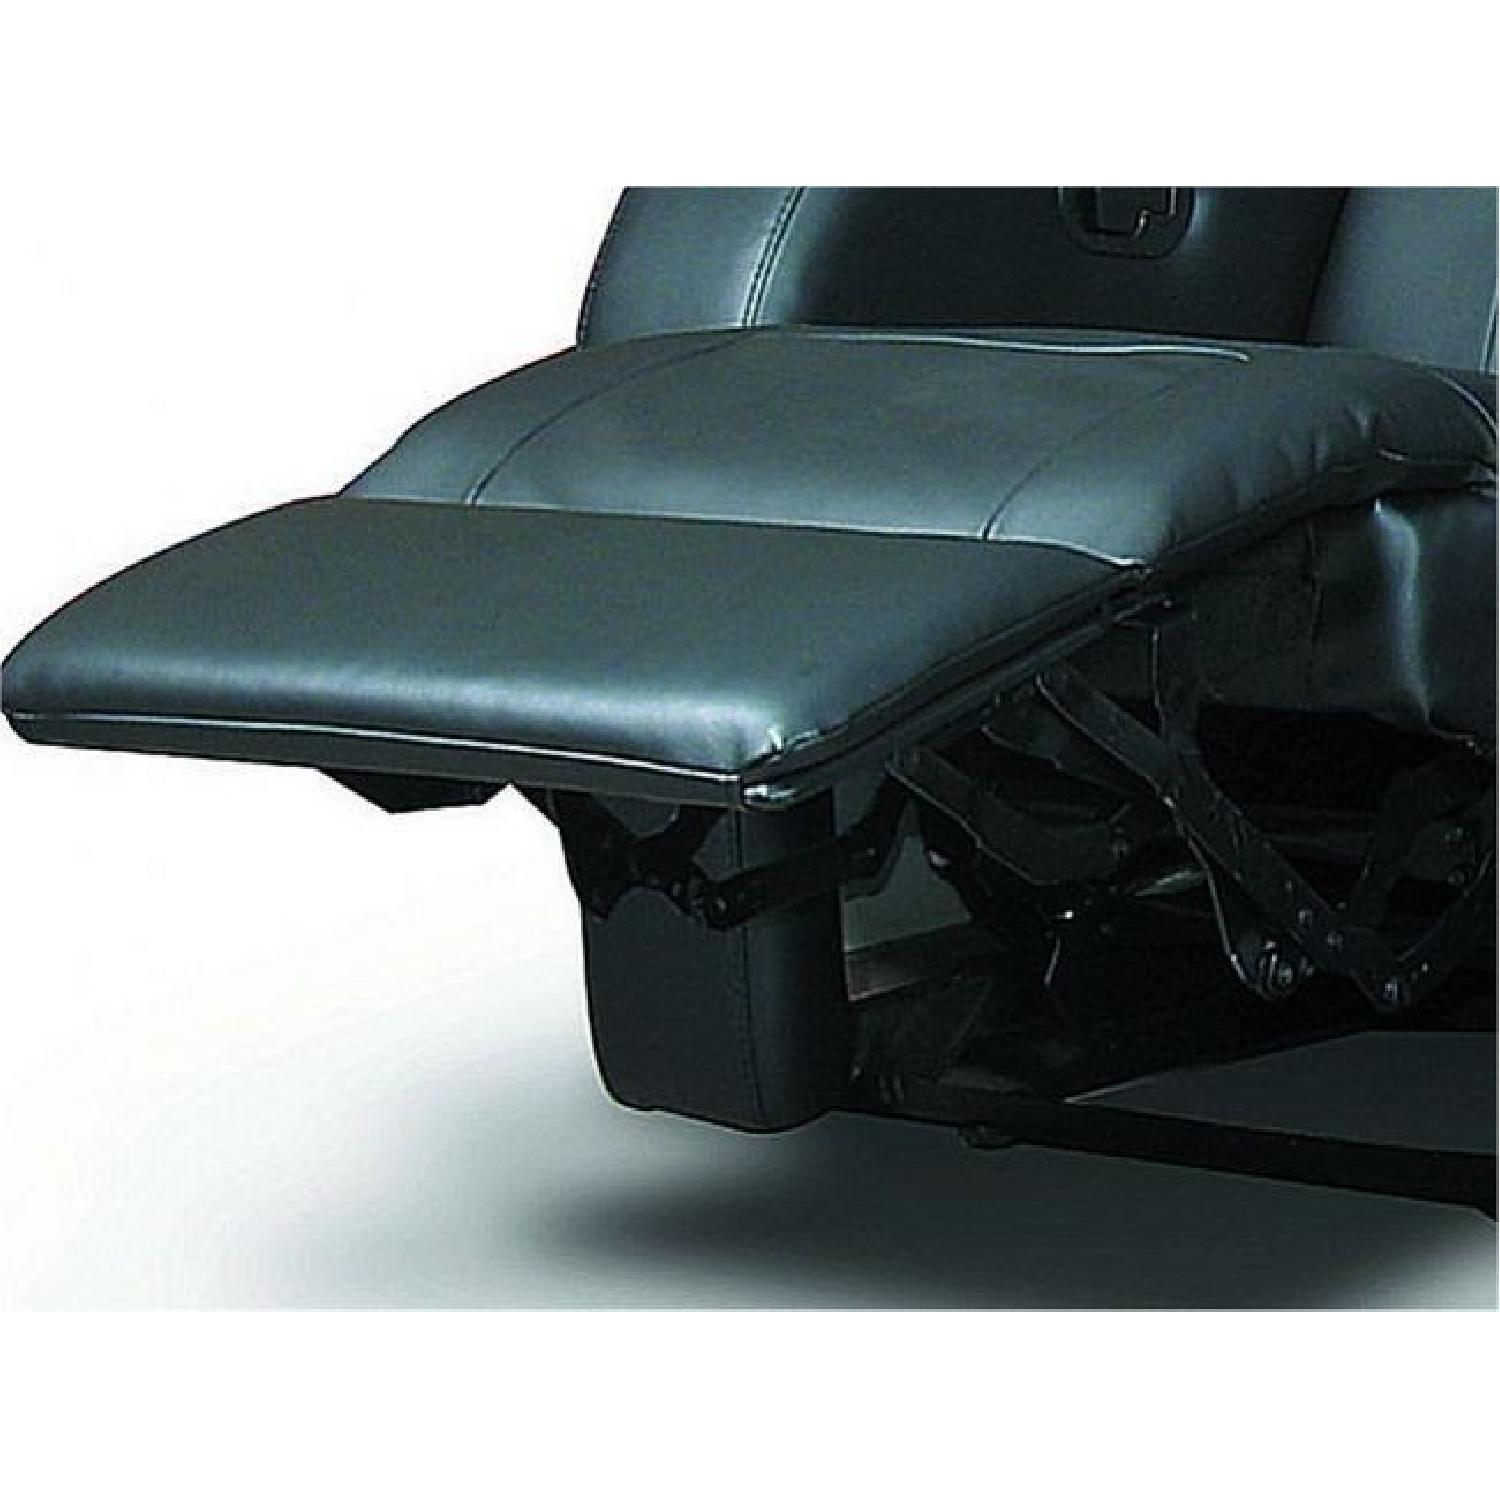 Recliner Chair in Black Leather Match w/ Cup-Holders-2